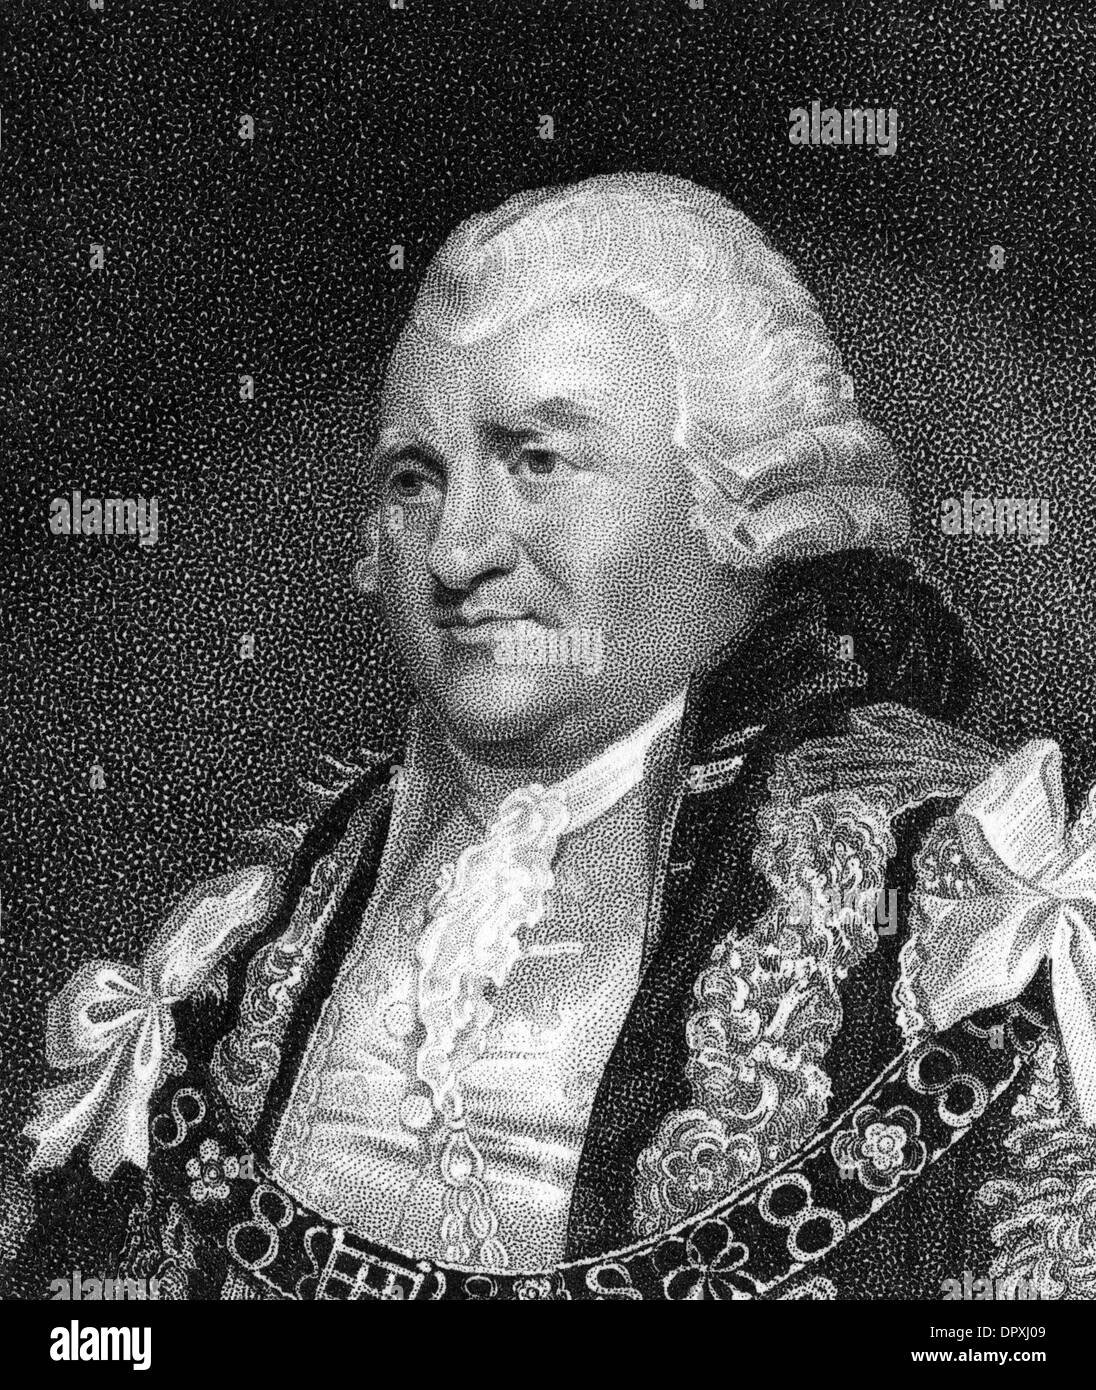 SIR WILLIAM STAINES - 1 - Stock Image